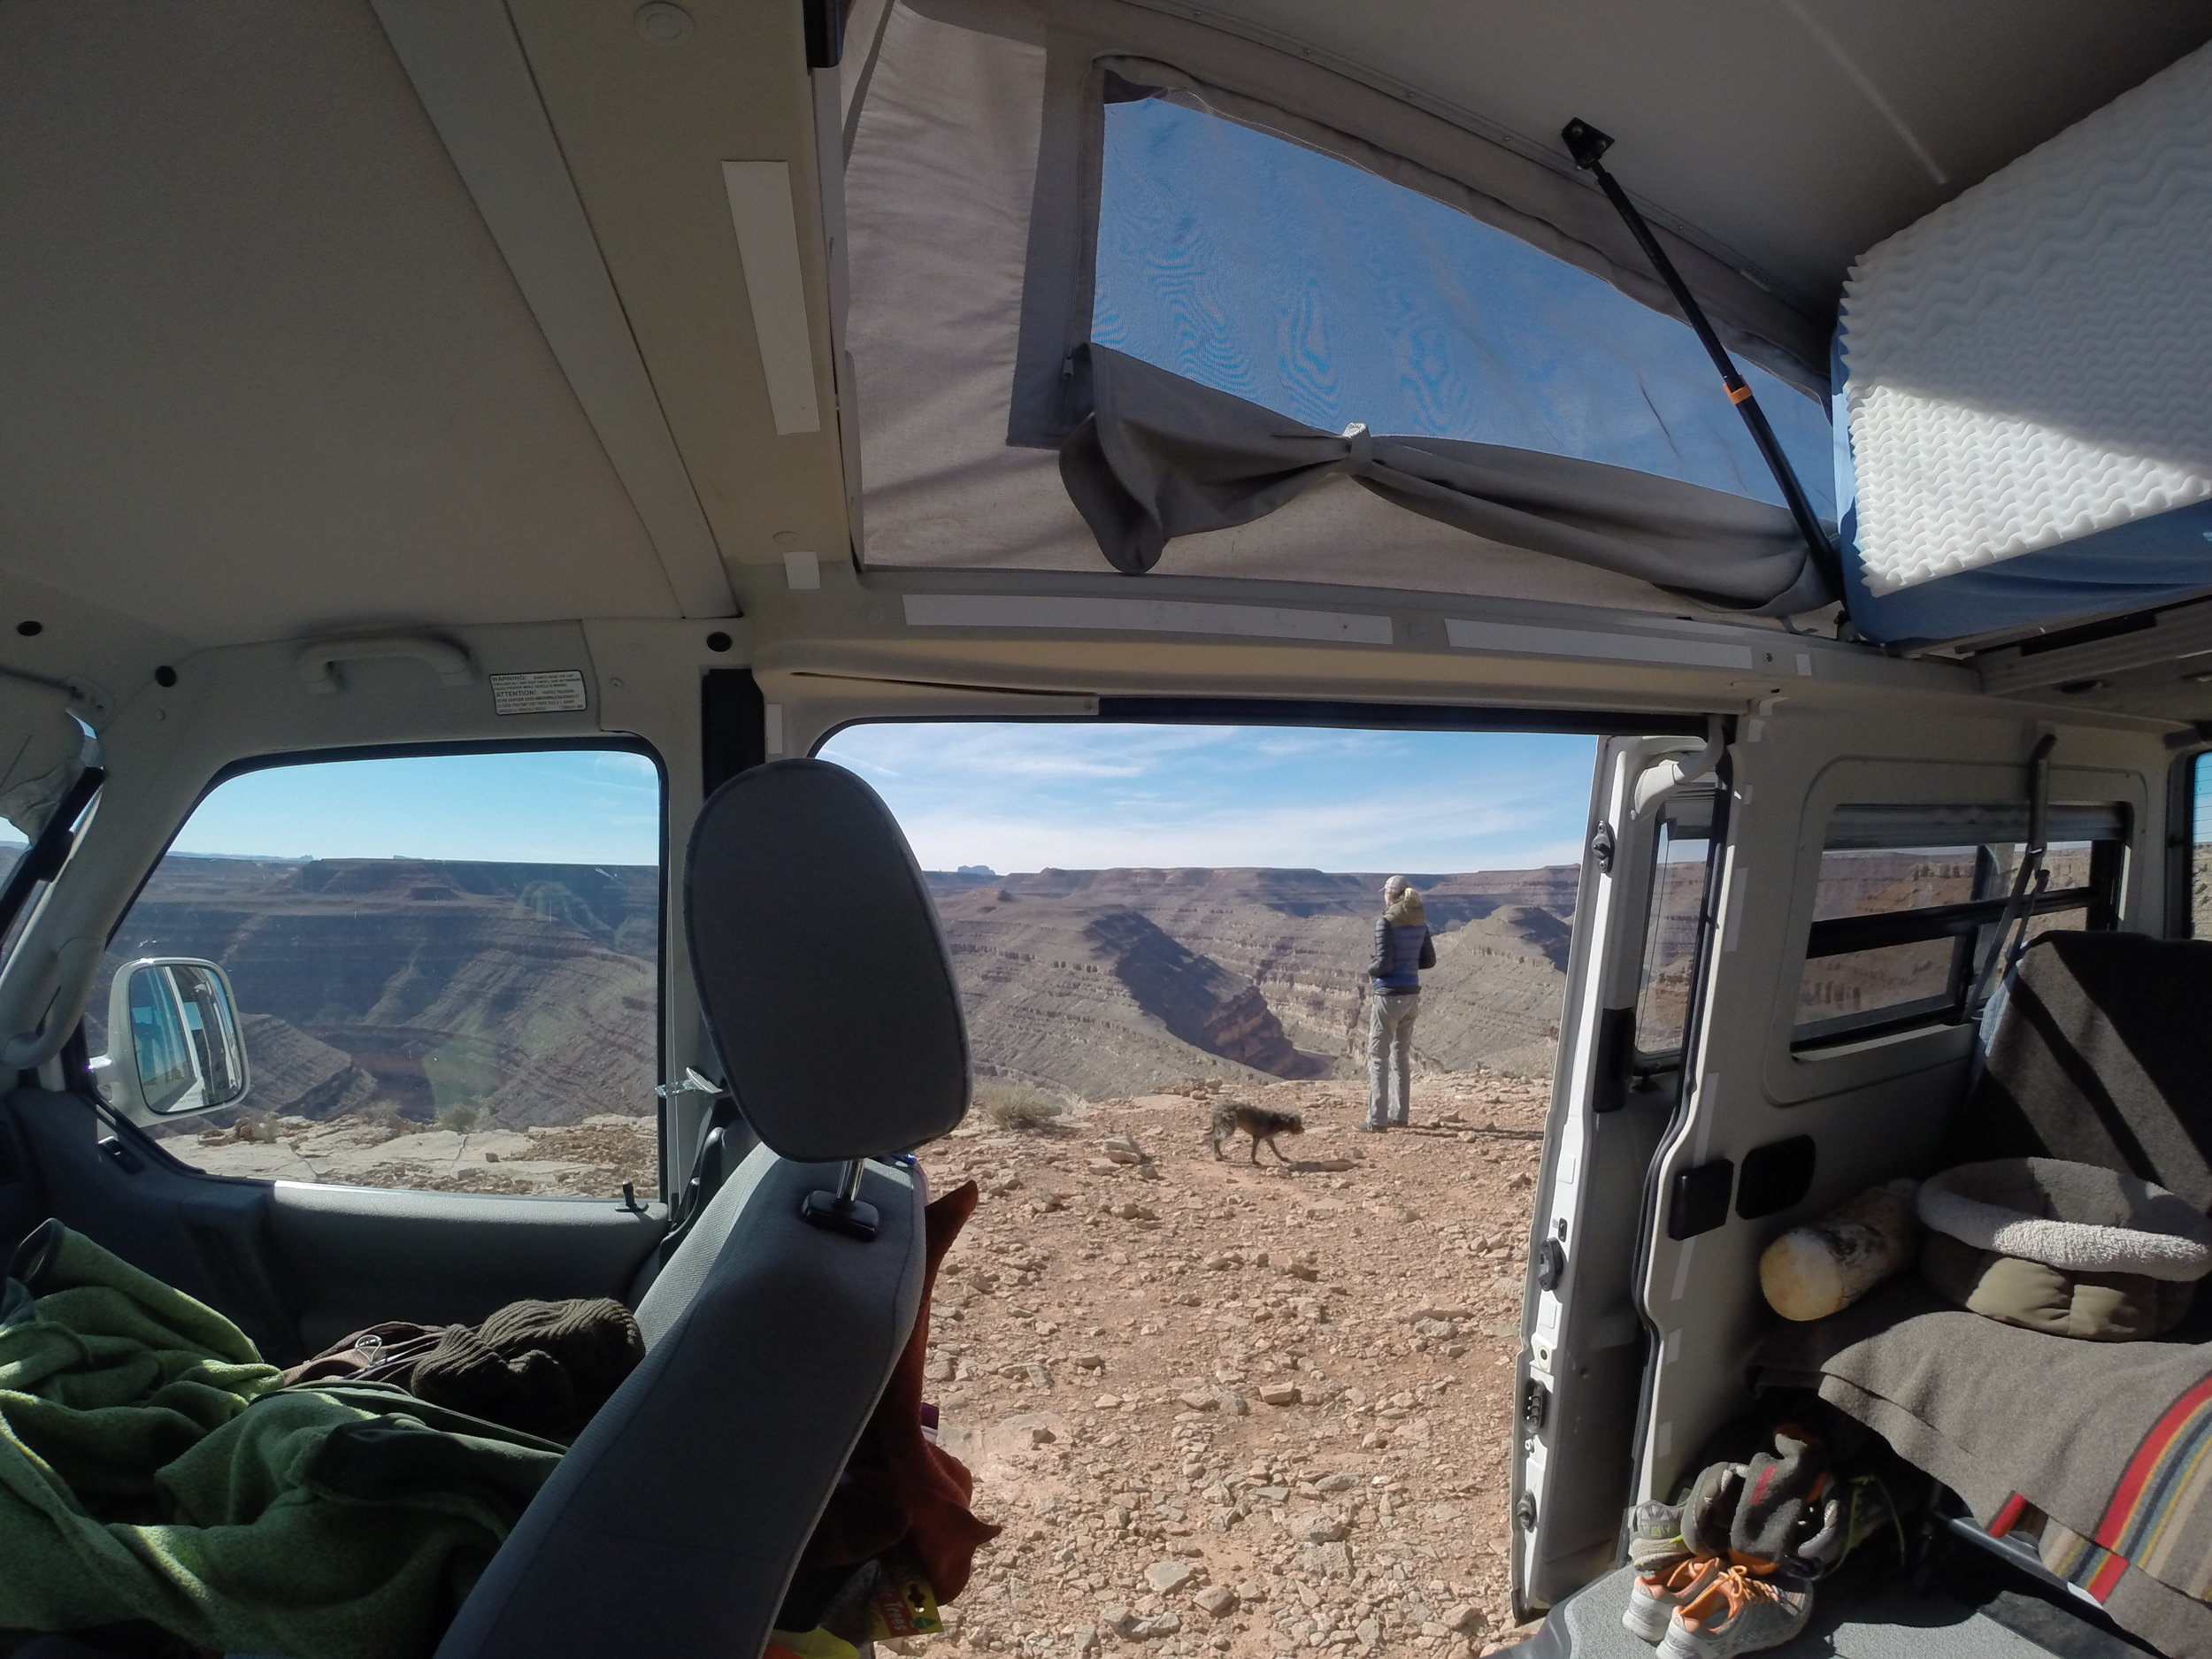 Camping with Max on the edge in Gooseneck State Park, Utah